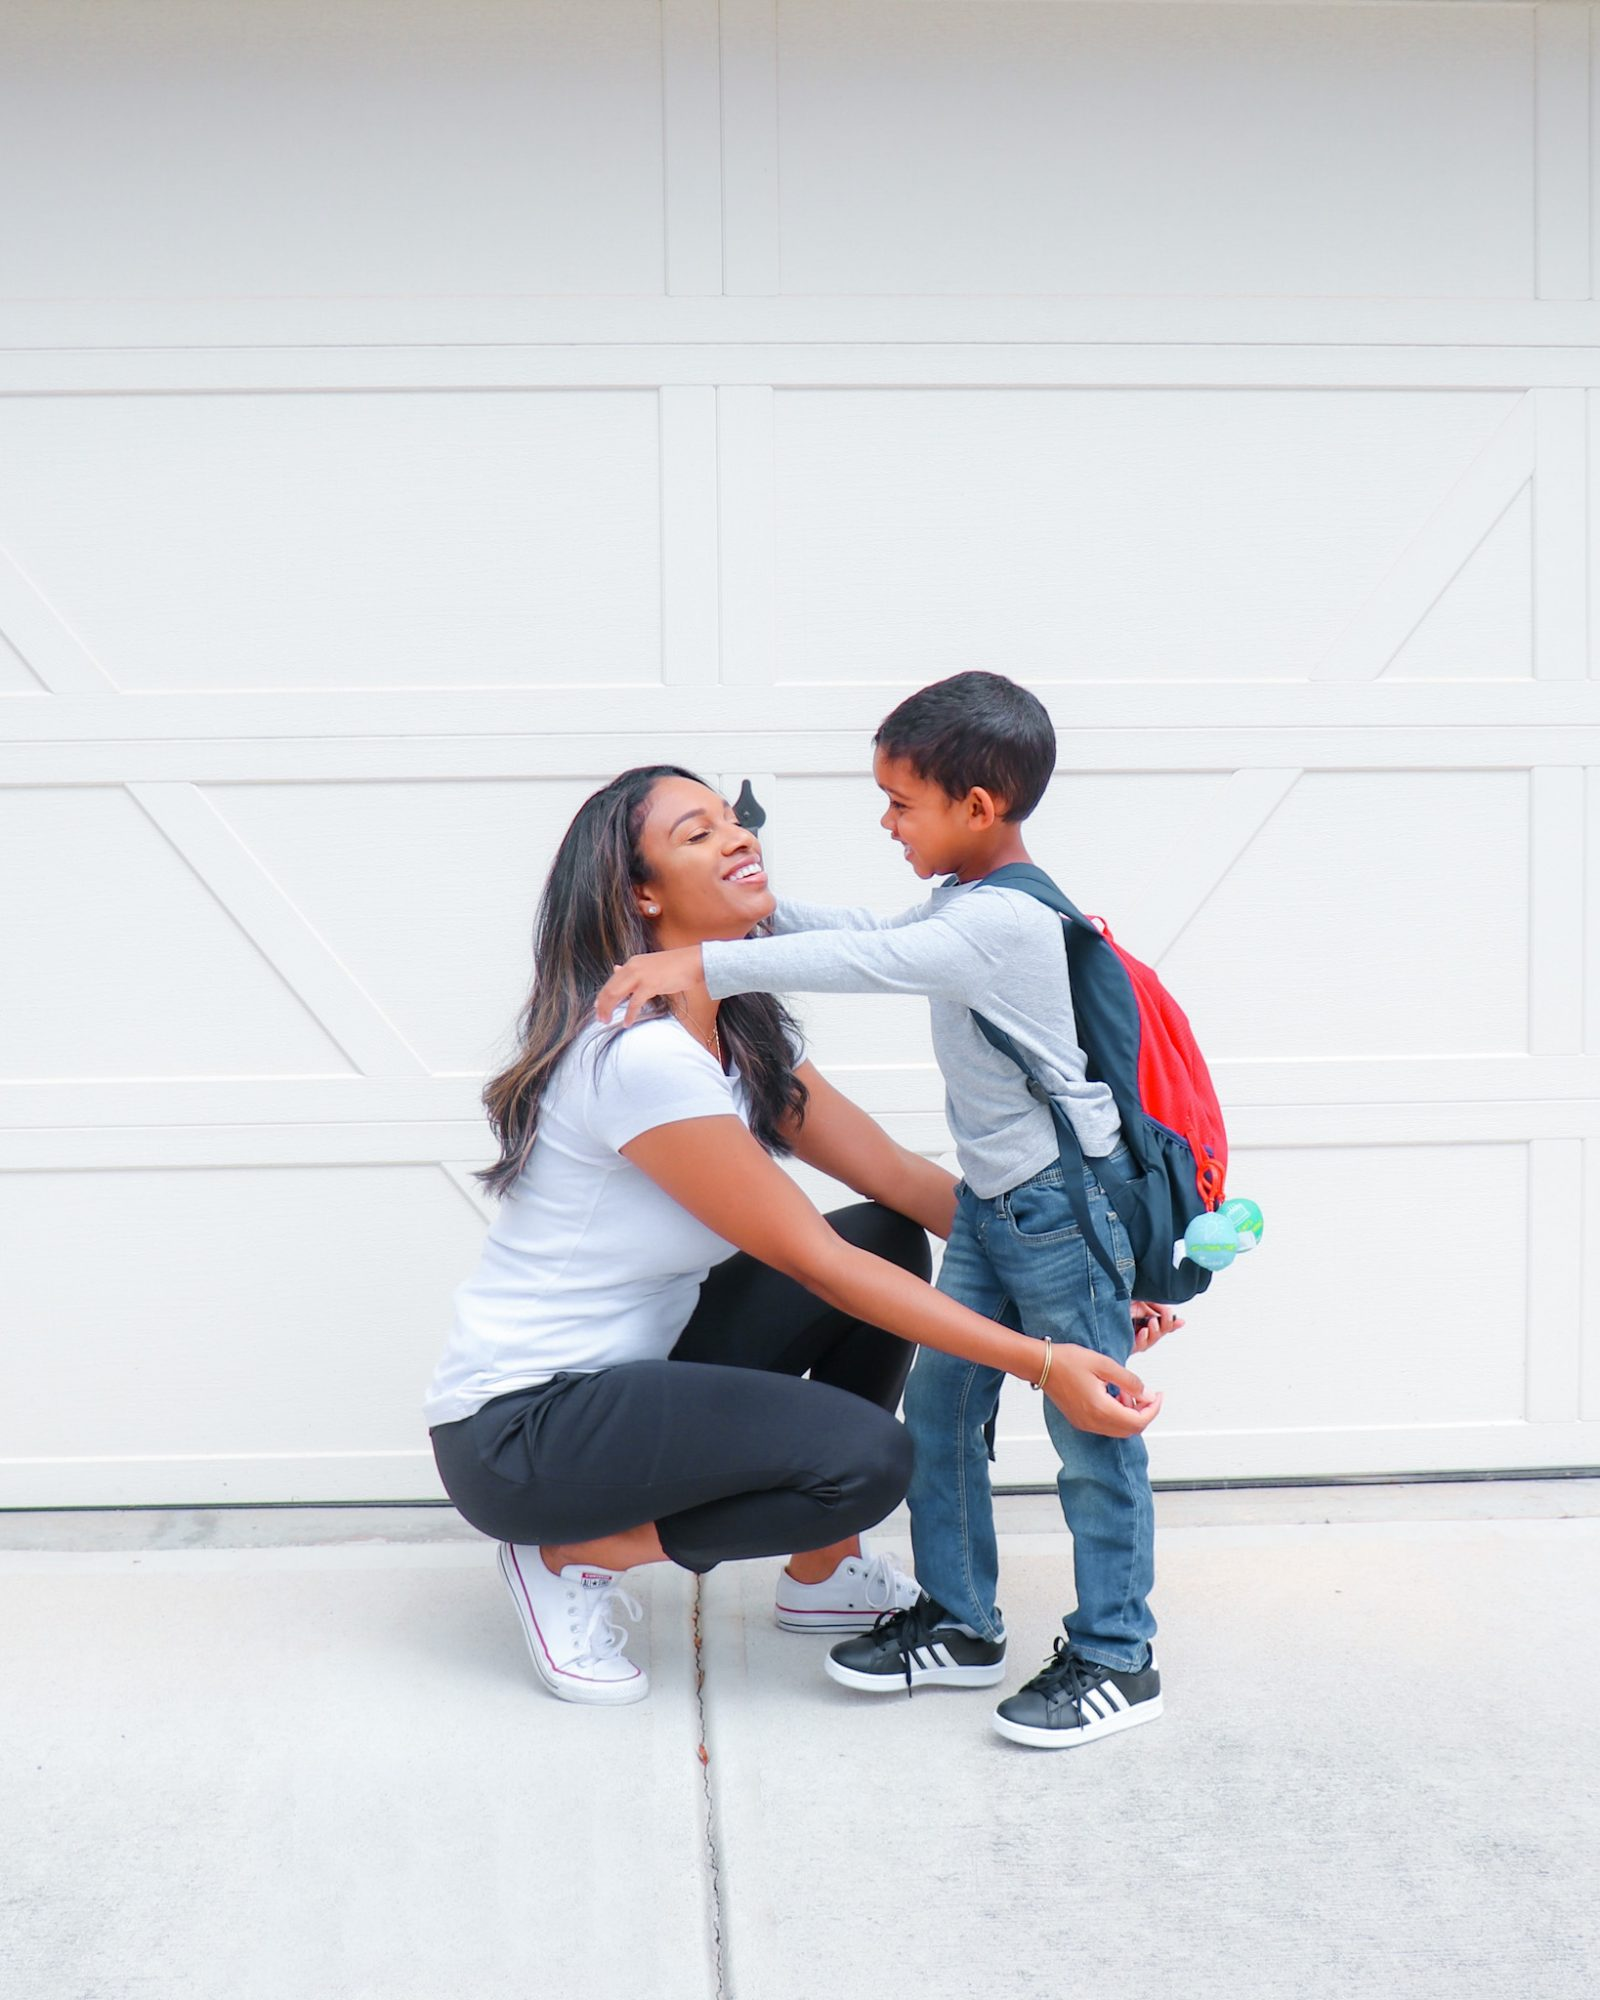 Mom and Son Famous Footwear Sneakers, Back To School